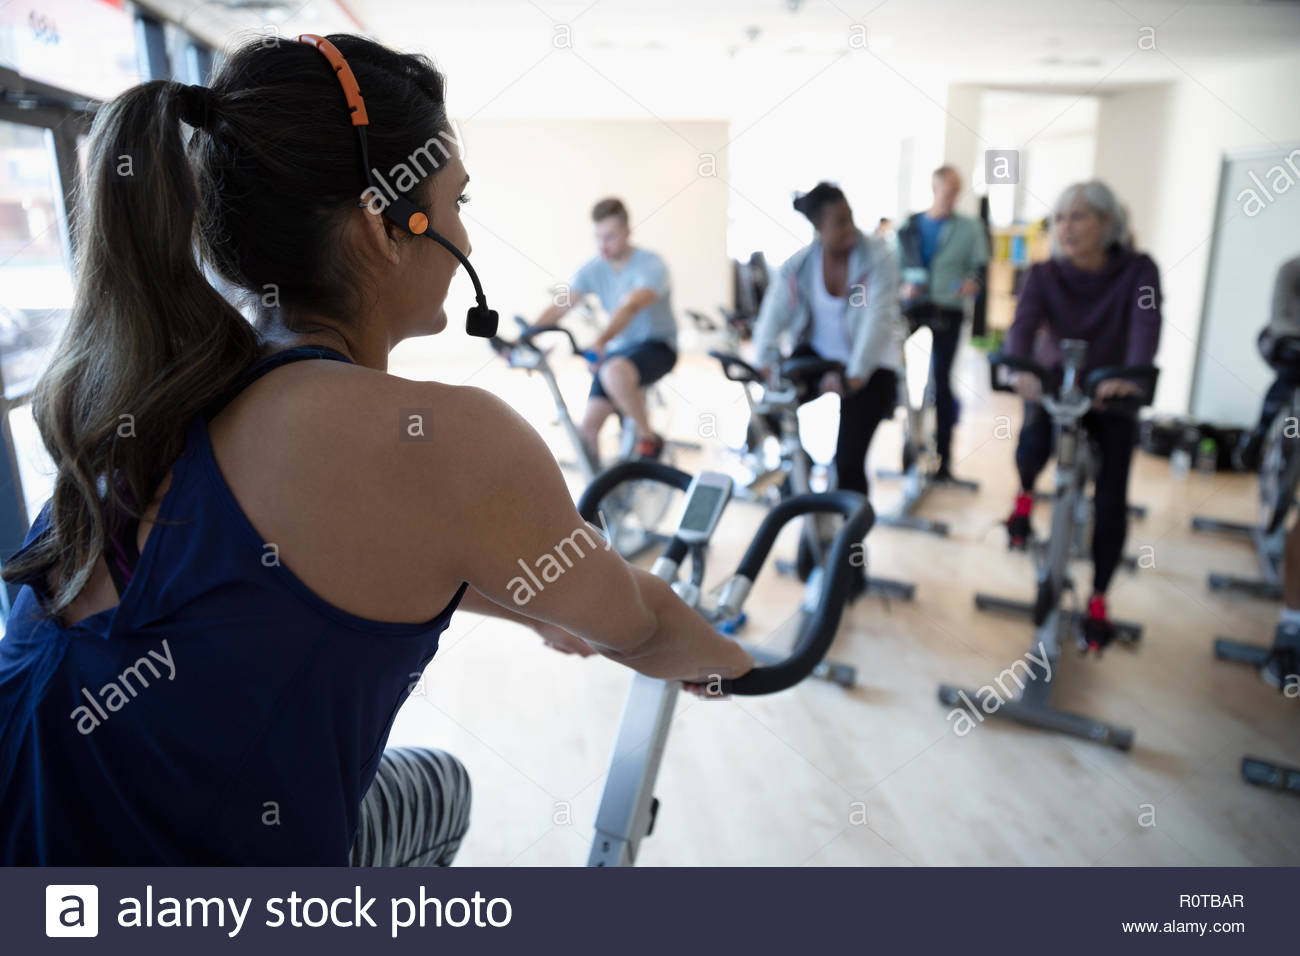 Female instructor riding exercise bike in spin class in gym - Stock Image